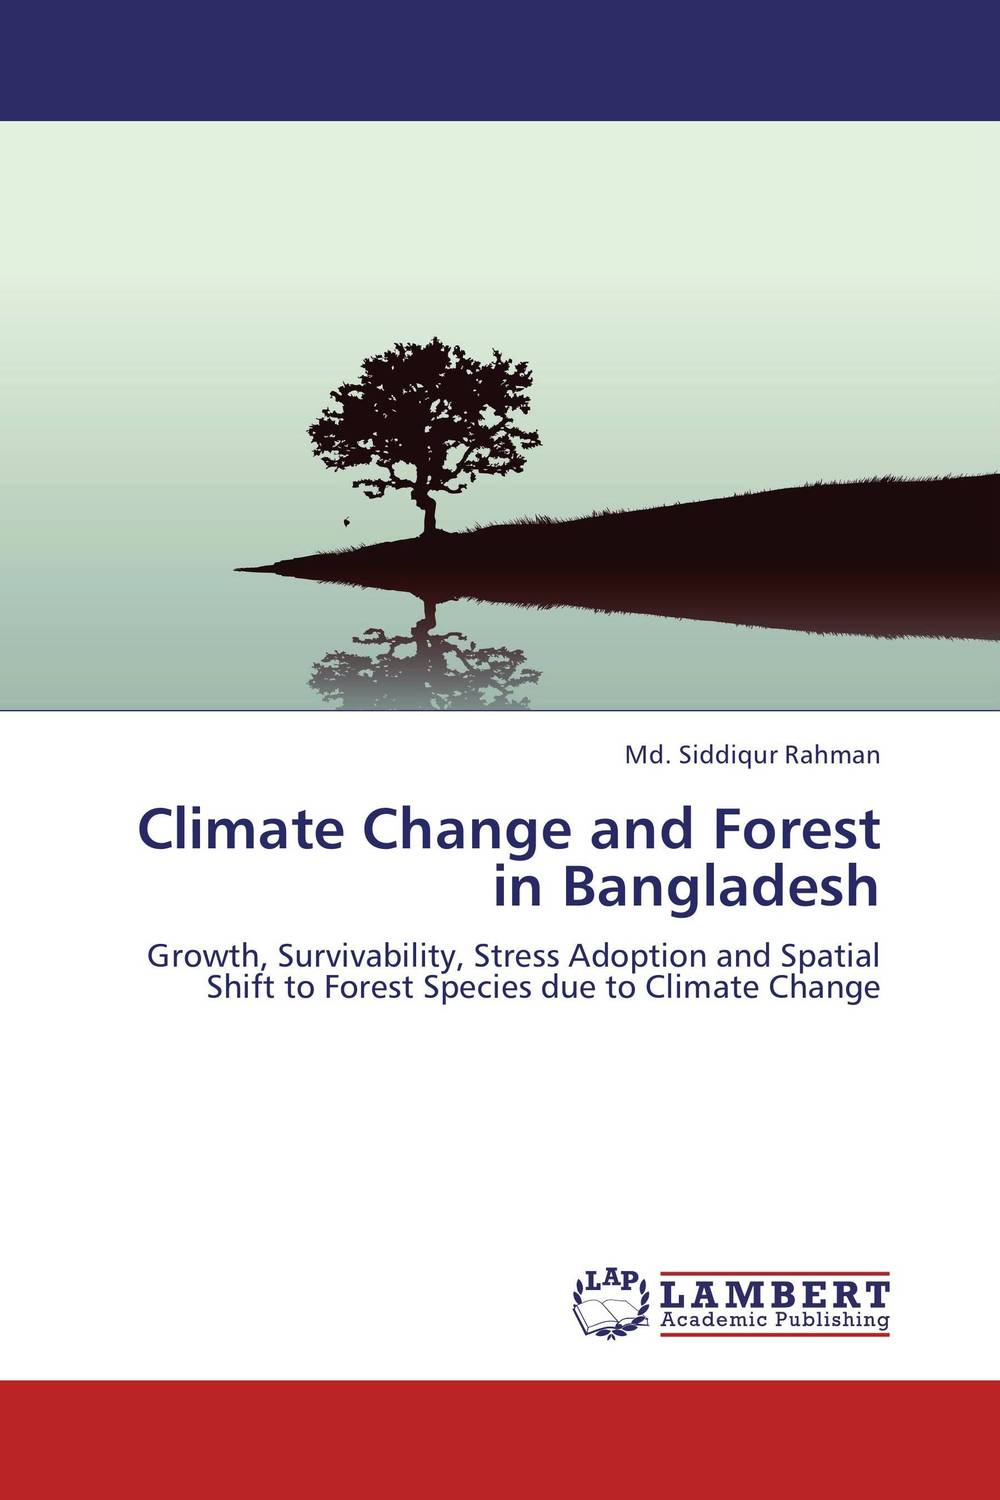 Climate Change and Forest in Bangladesh gnanasekar s and chandrasekhar c n carbon sequestration in multipurpose tree species at seedling stage